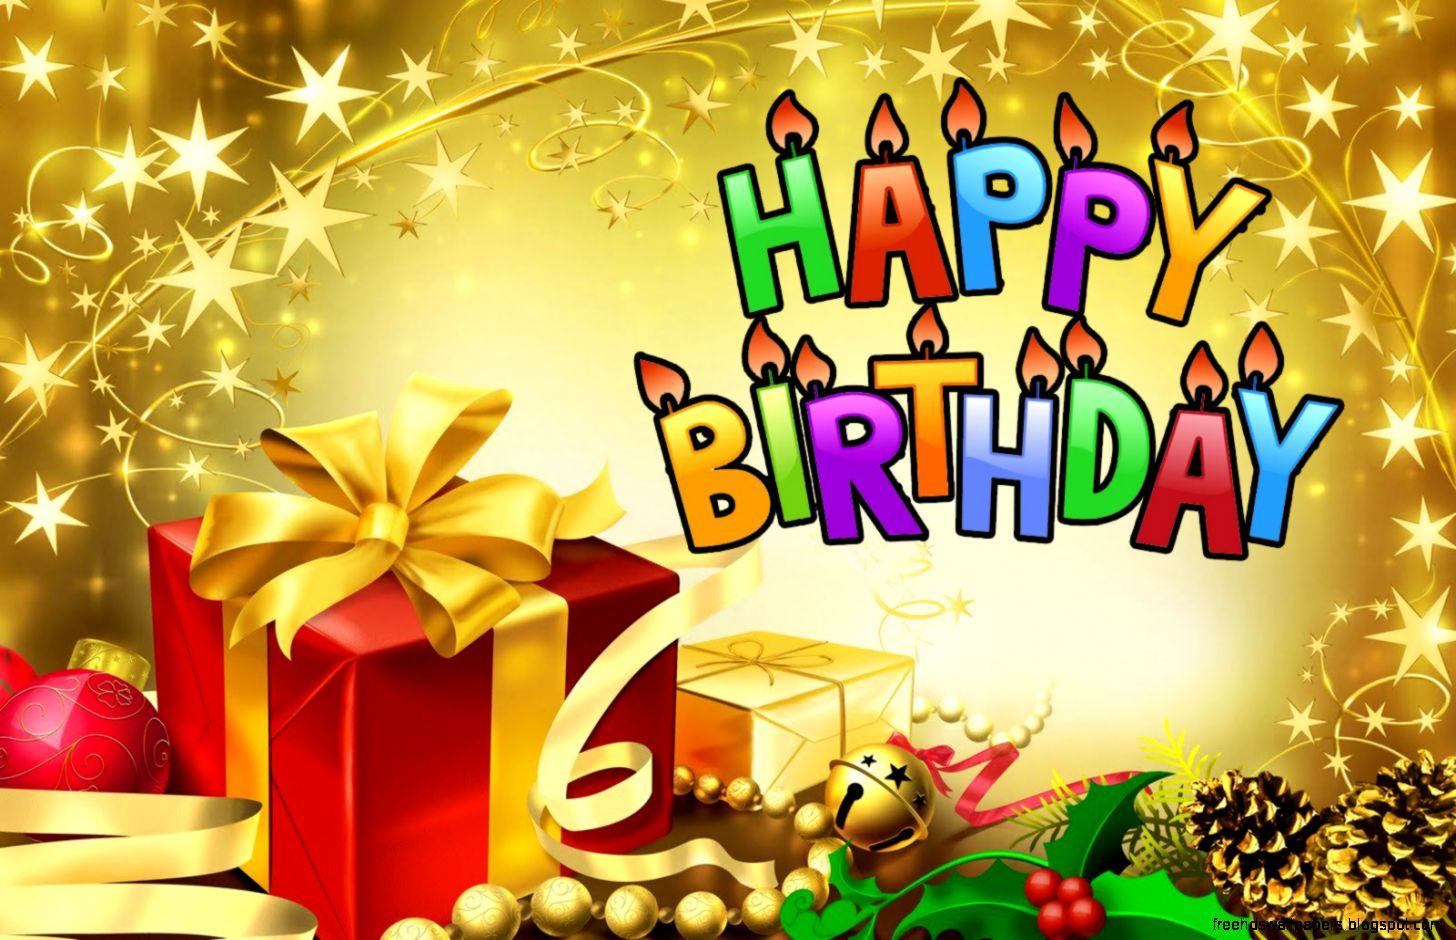 Hd wallpaper happy birthday gifts free hd wallpapers view original size negle Gallery